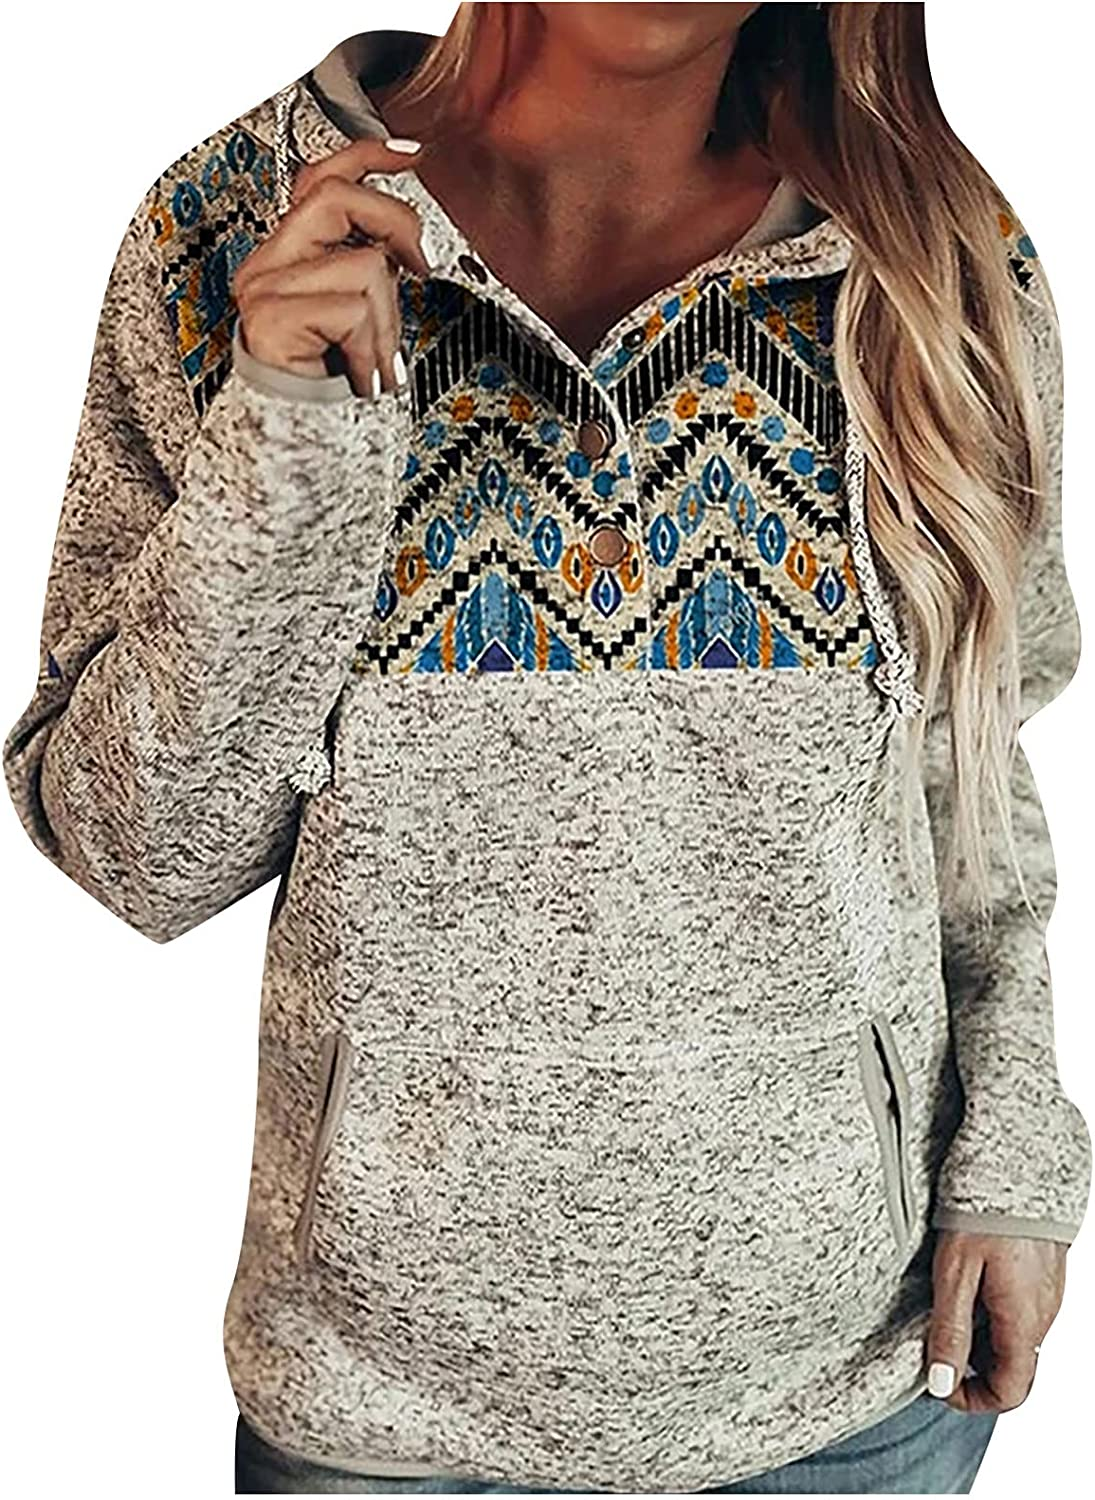 Button Down Sweatshirts for Women Vintage Pa Comfy Trendy Award-winning store Hoodie Year-end annual account